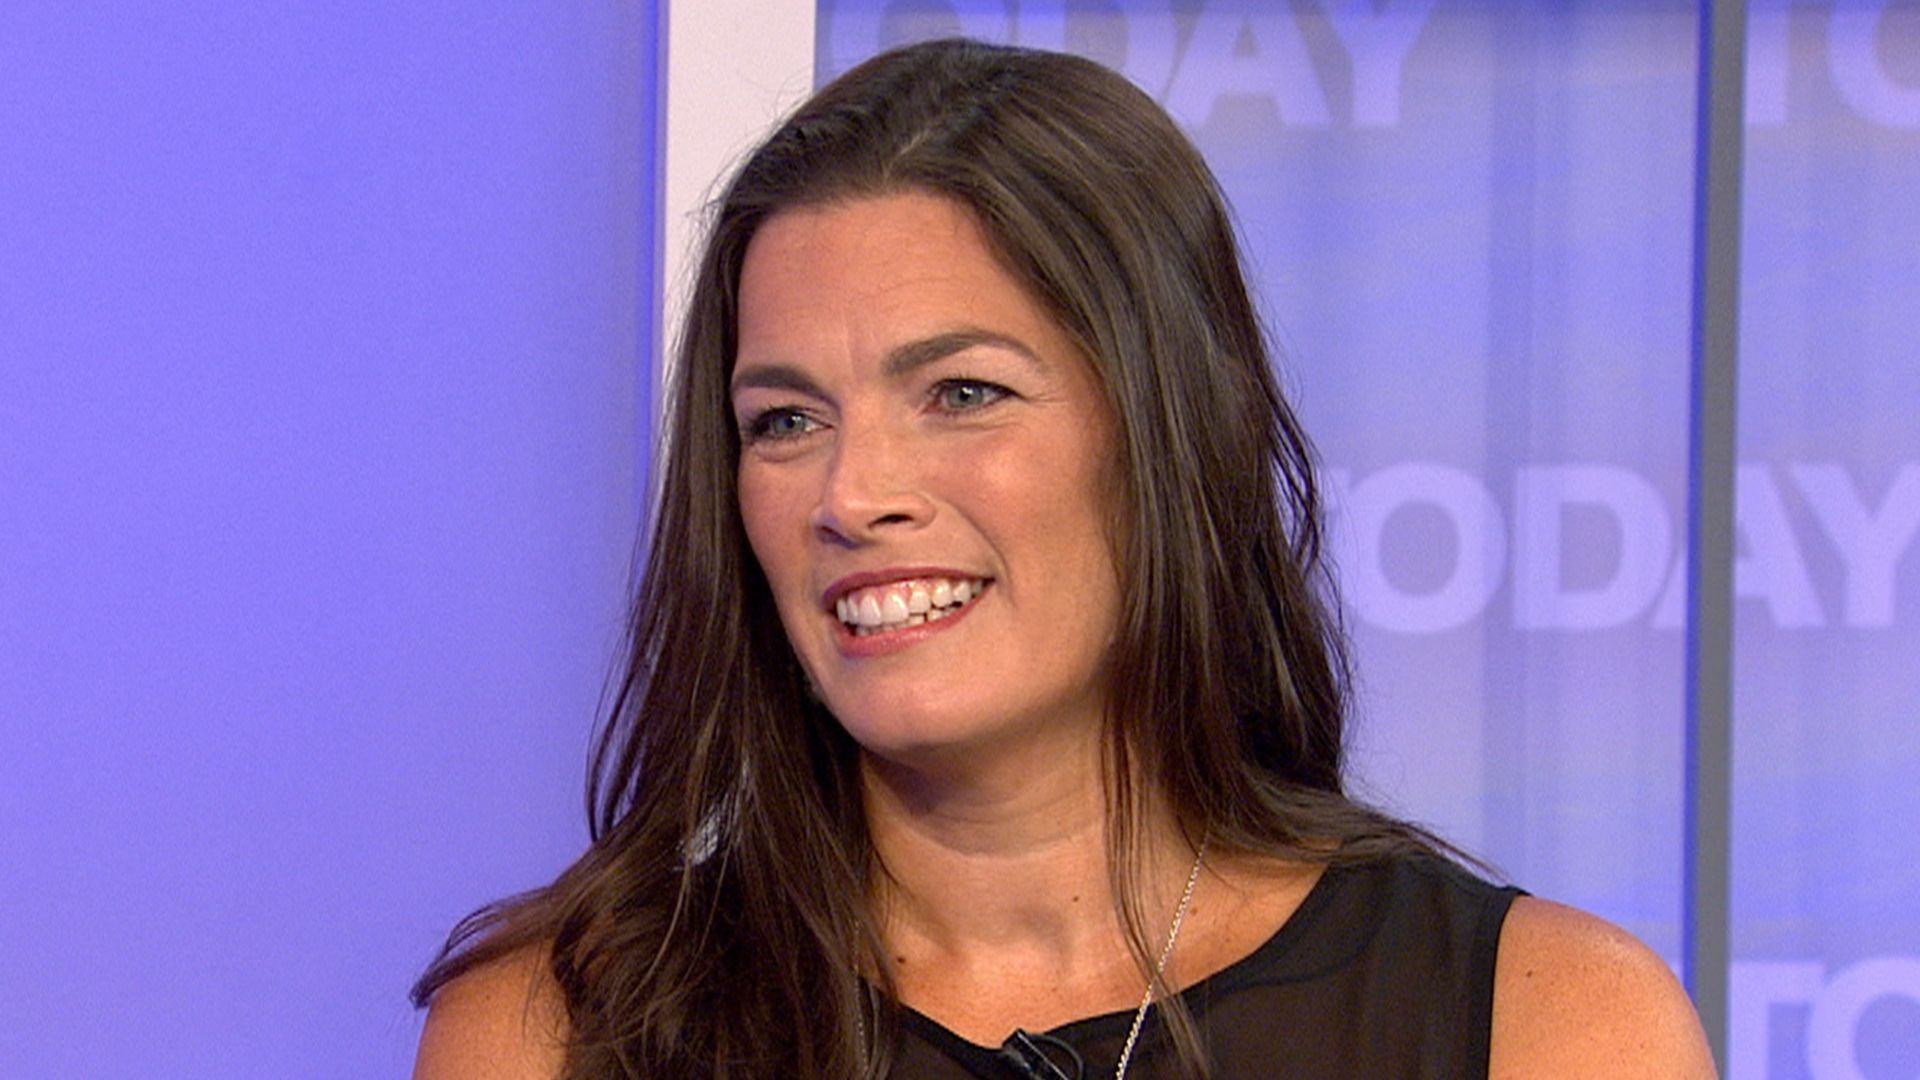 Nancy Kerrigan speaks out on 'horrific' 1994 attack, dad's death ...